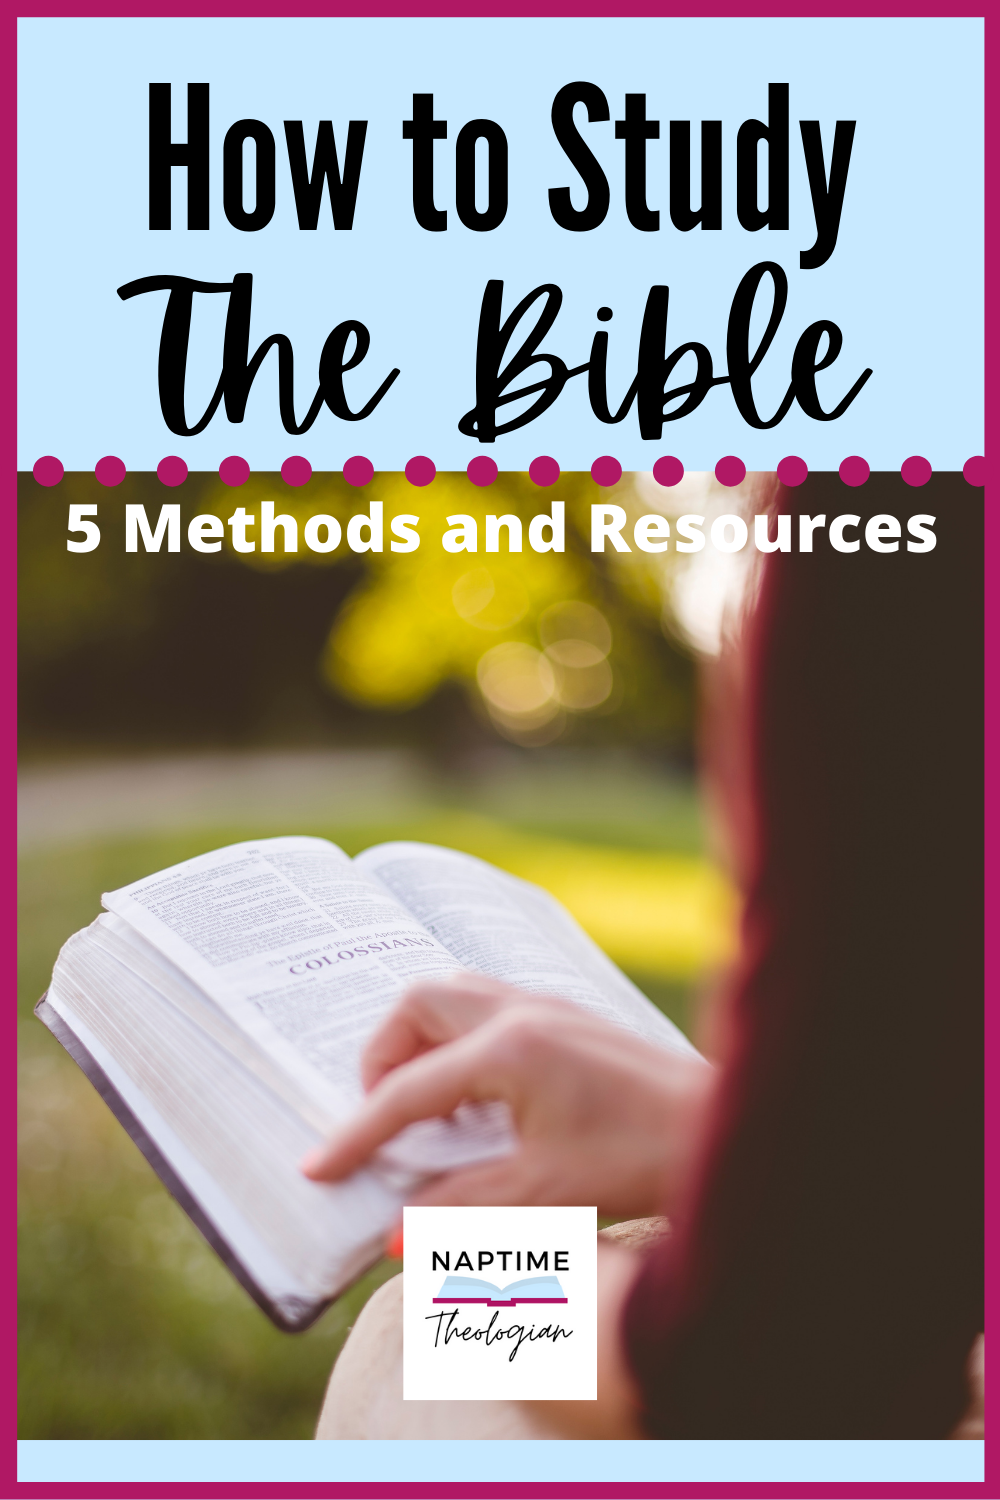 How to Study the Bible | 5 Methods and Resources